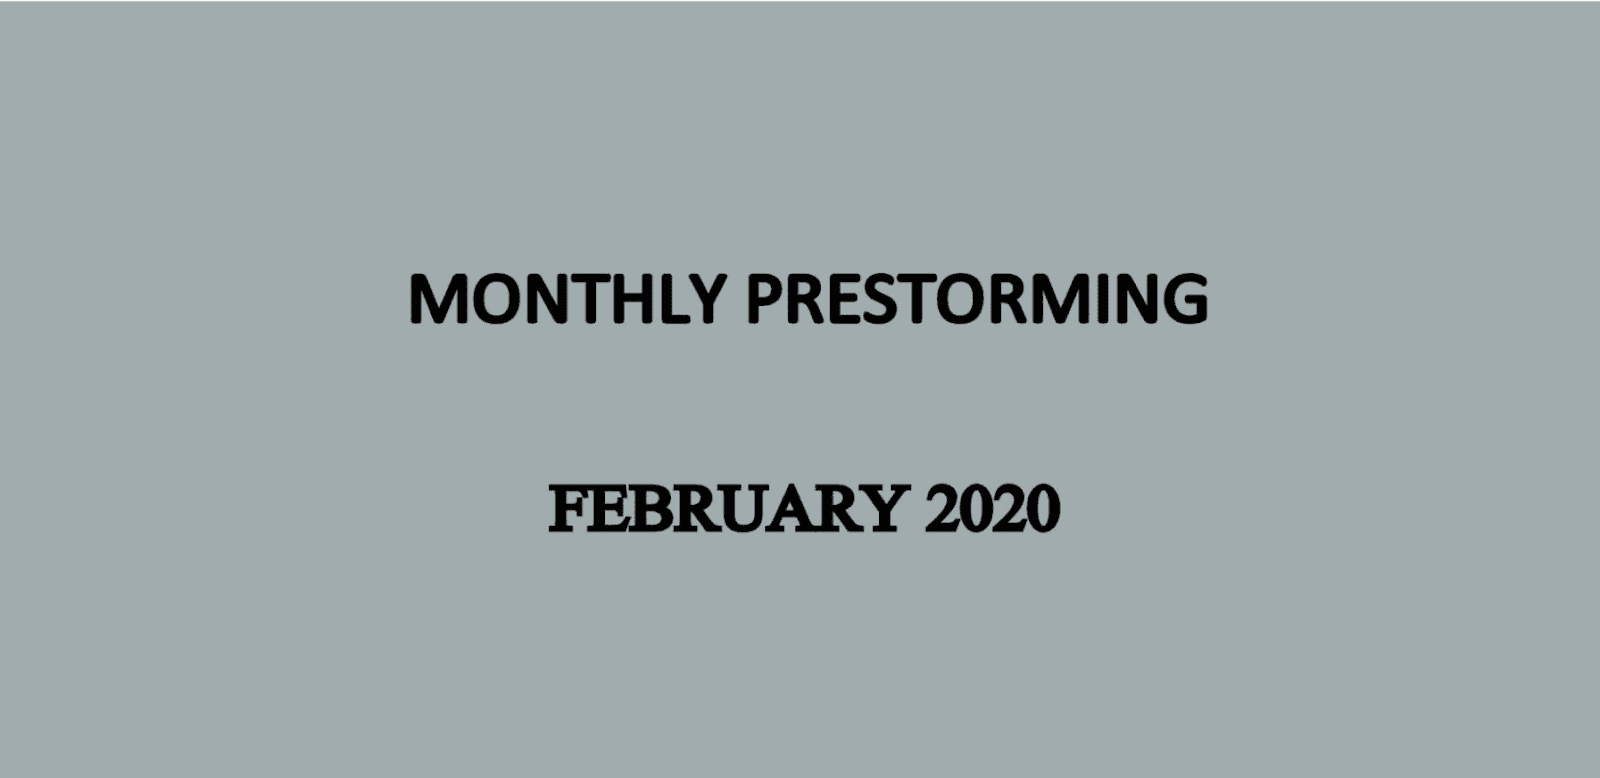 UPSC Monthly Prestorming February for UPSC Prelims 2020